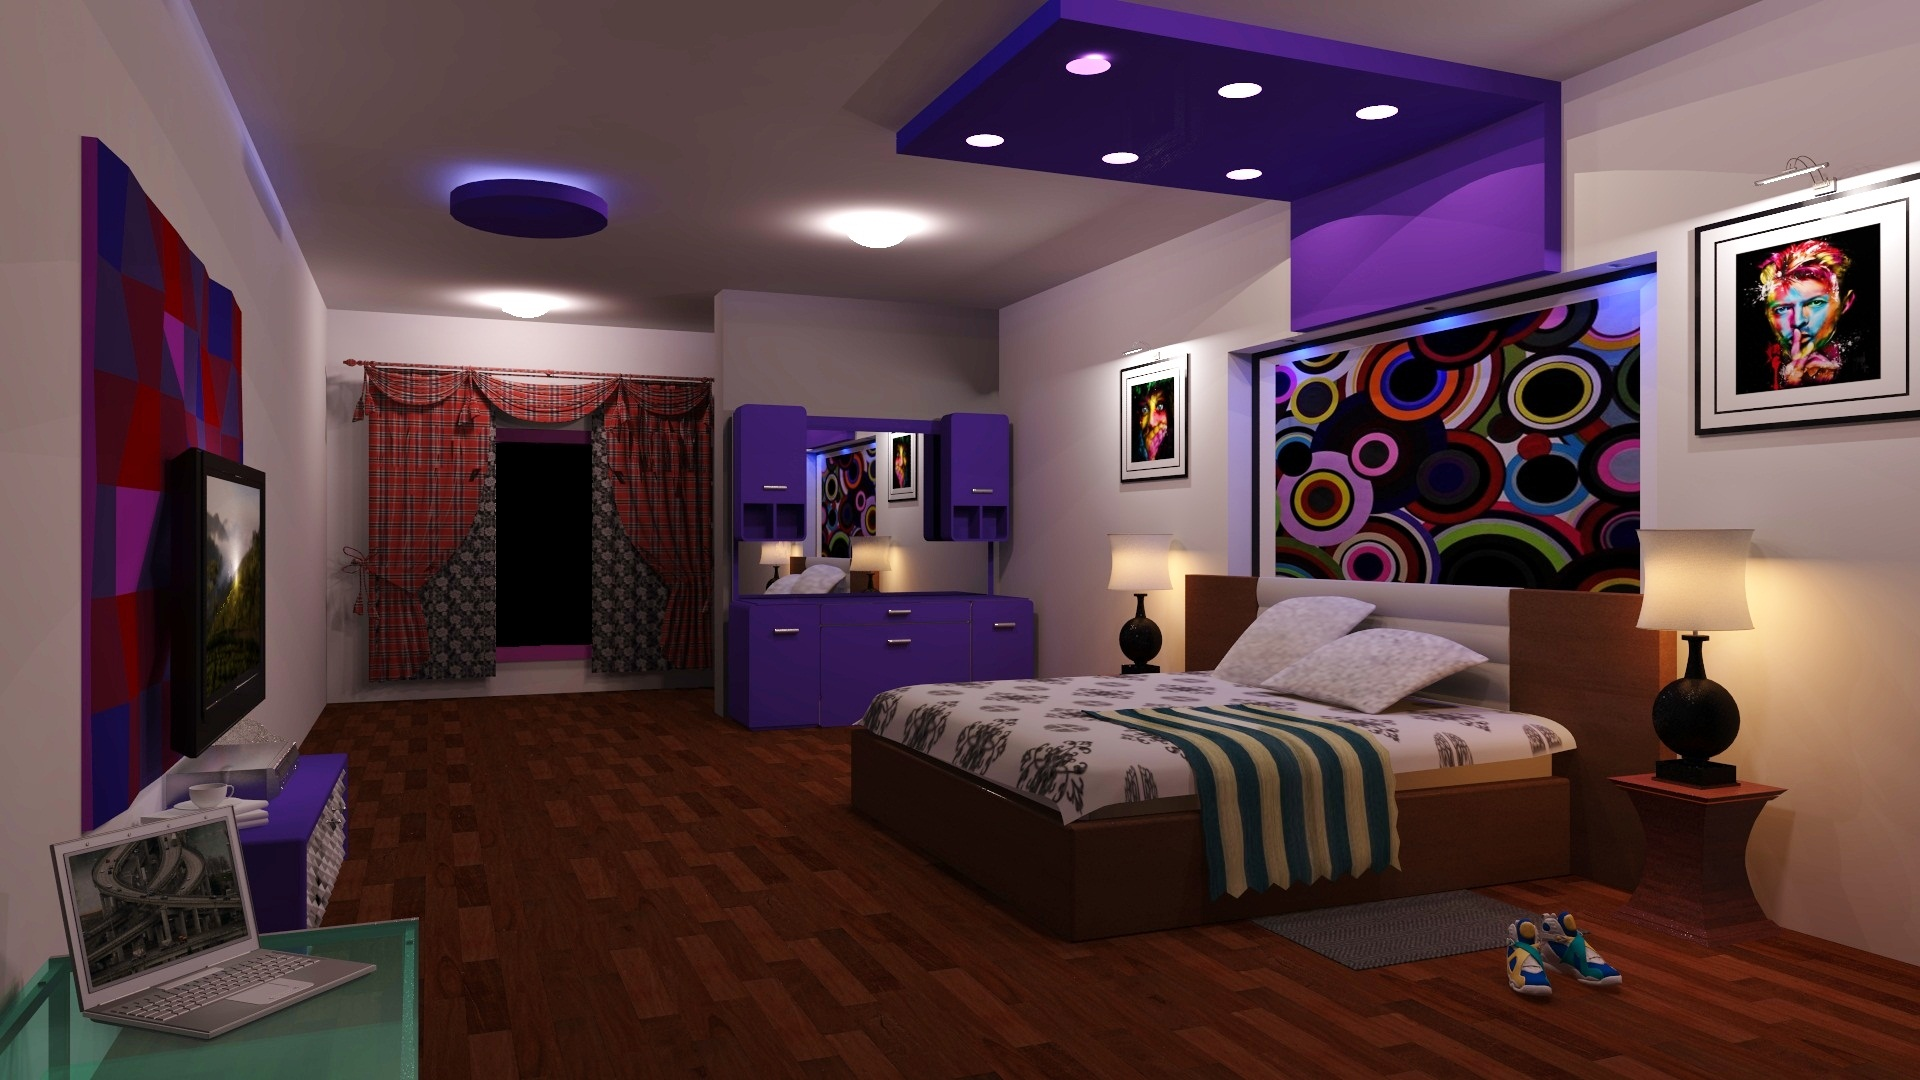 d bedroom interior design free white bedroom with green 3d view of bedroom design - 3d Bedroom Design